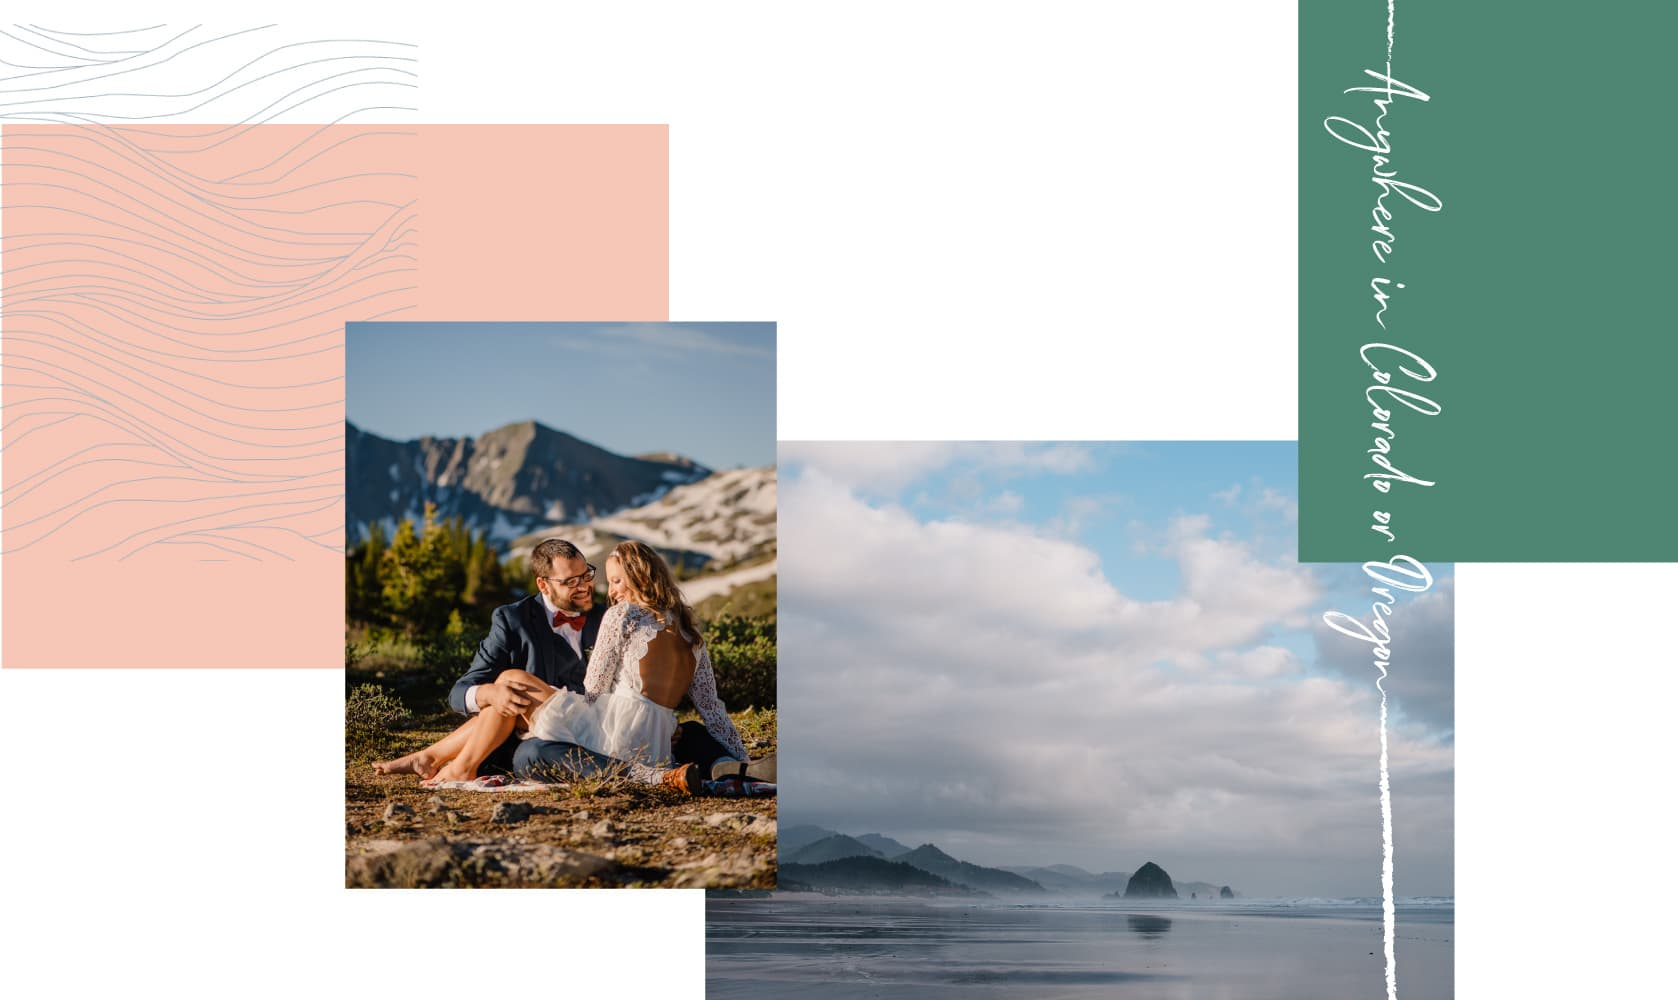 couple snuggling on mountain top in colorado and photo of cannon beach in oregon